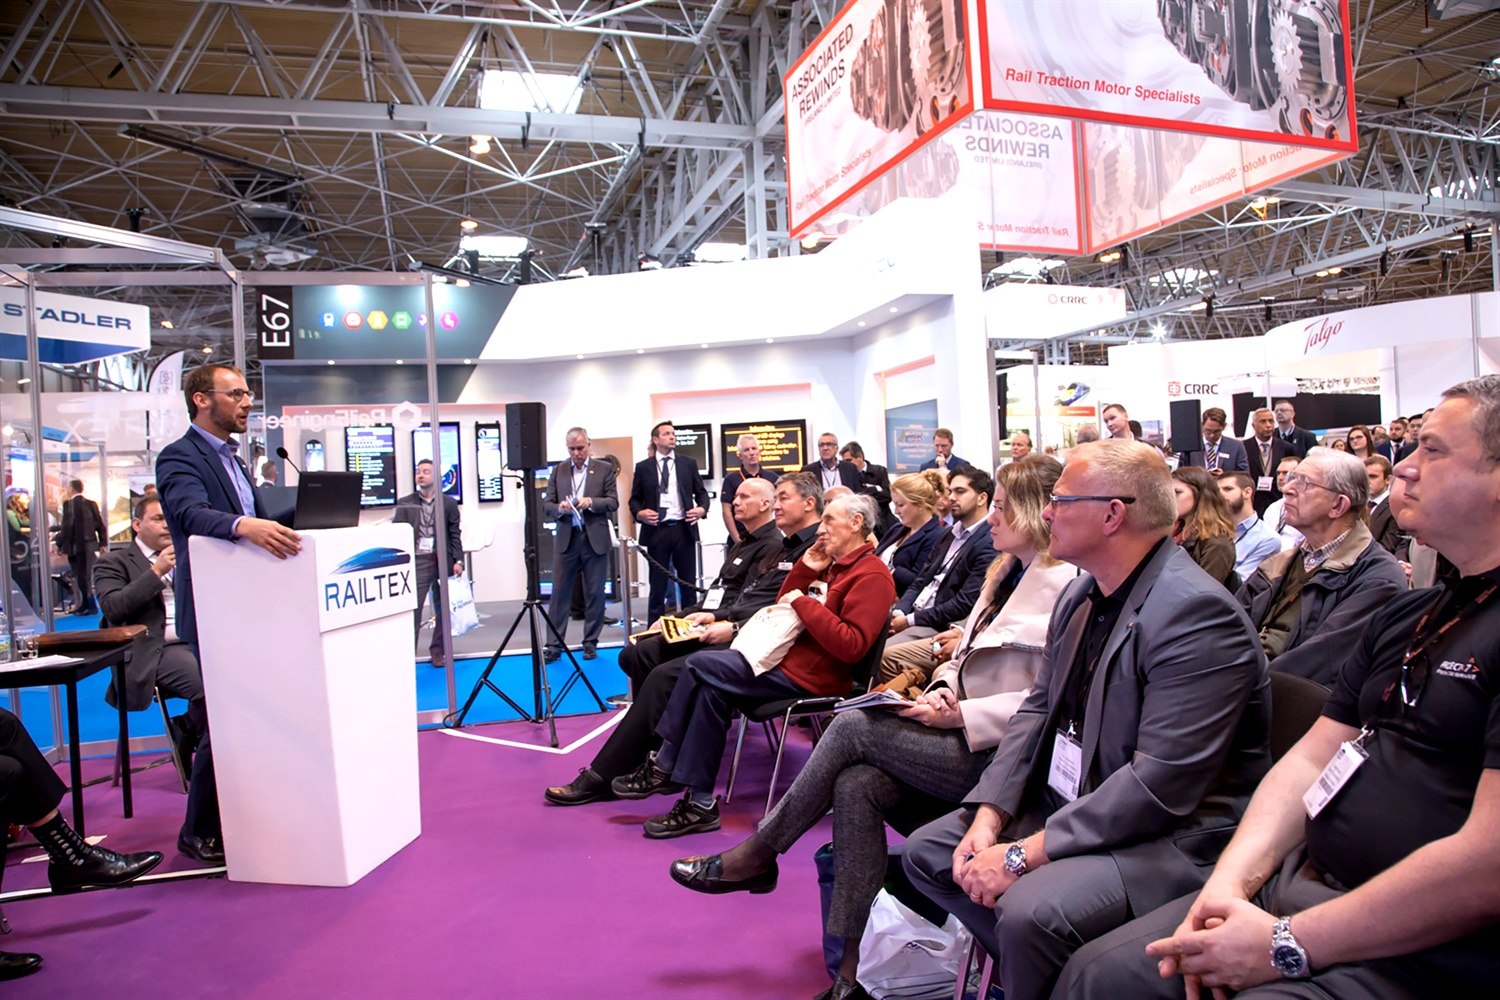 Railtex: putting rail in the spotlight